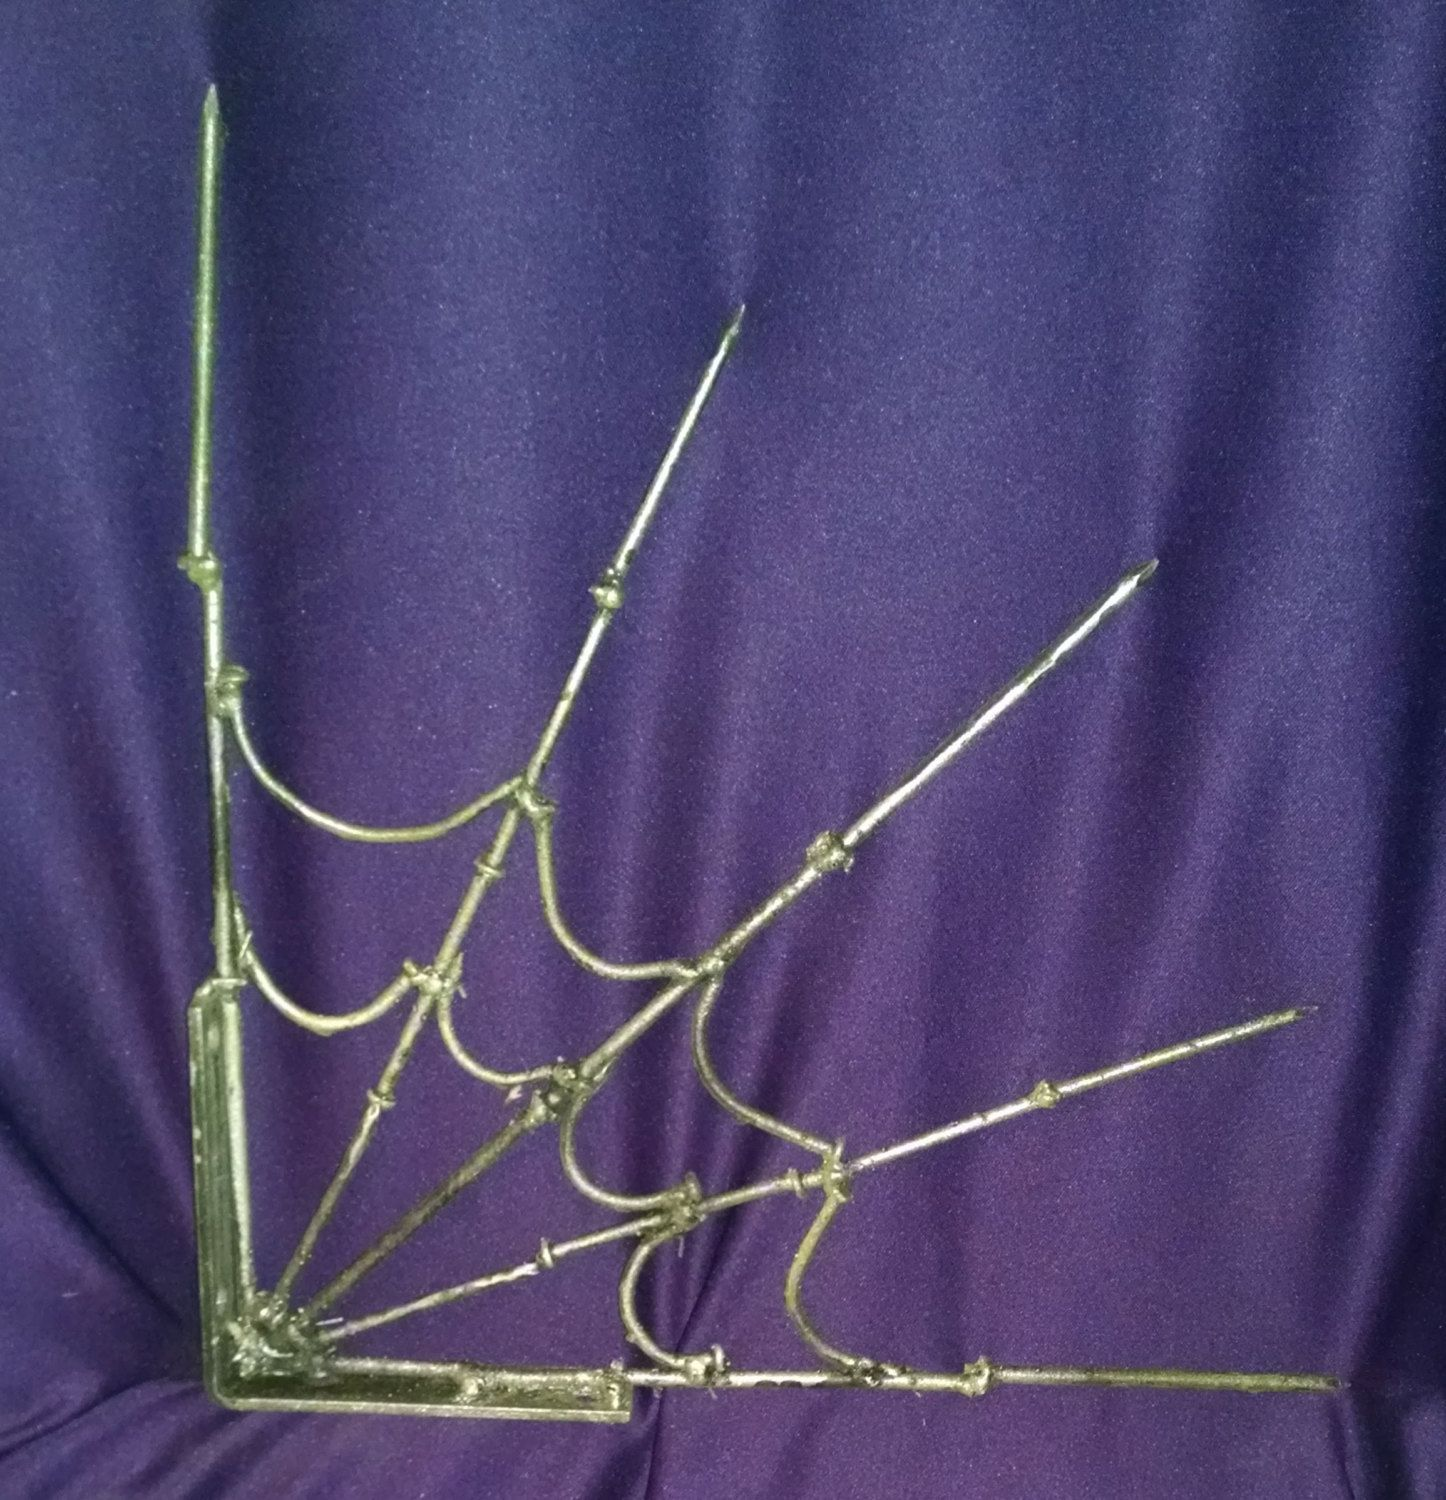 Spider Web, made from nails, Web Halloween Decoration ...